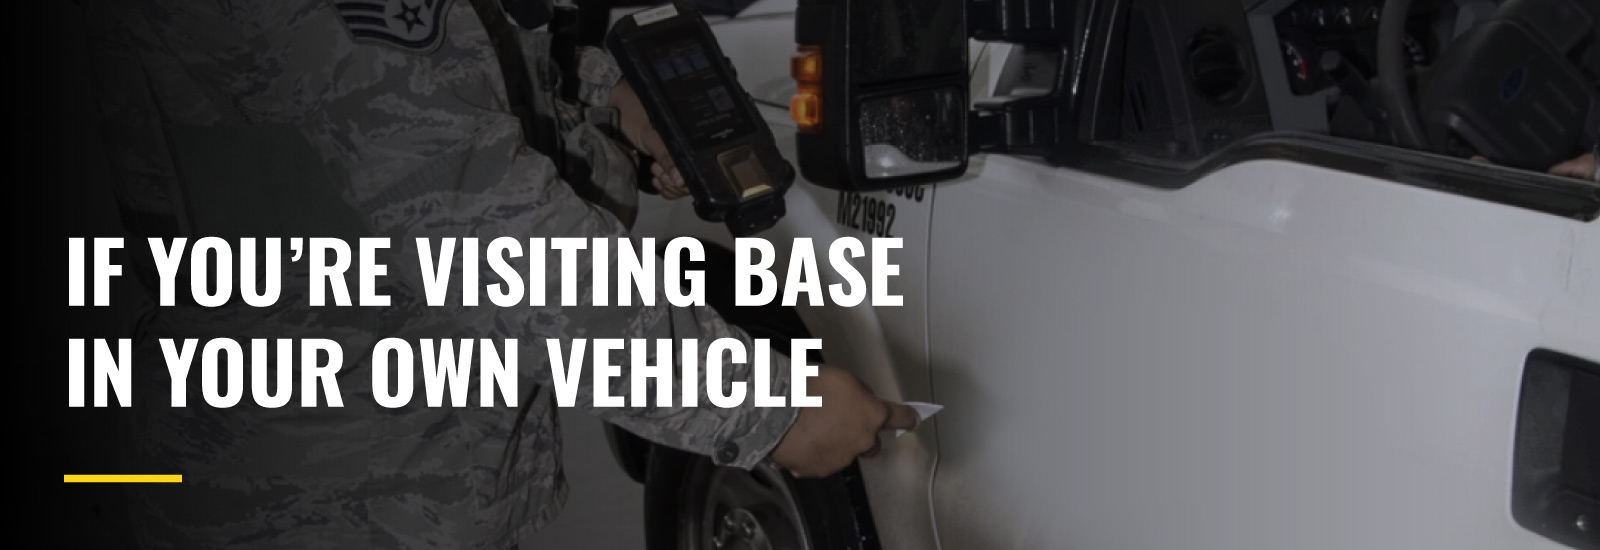 If You're Visiting Base in Your Own Vehicle